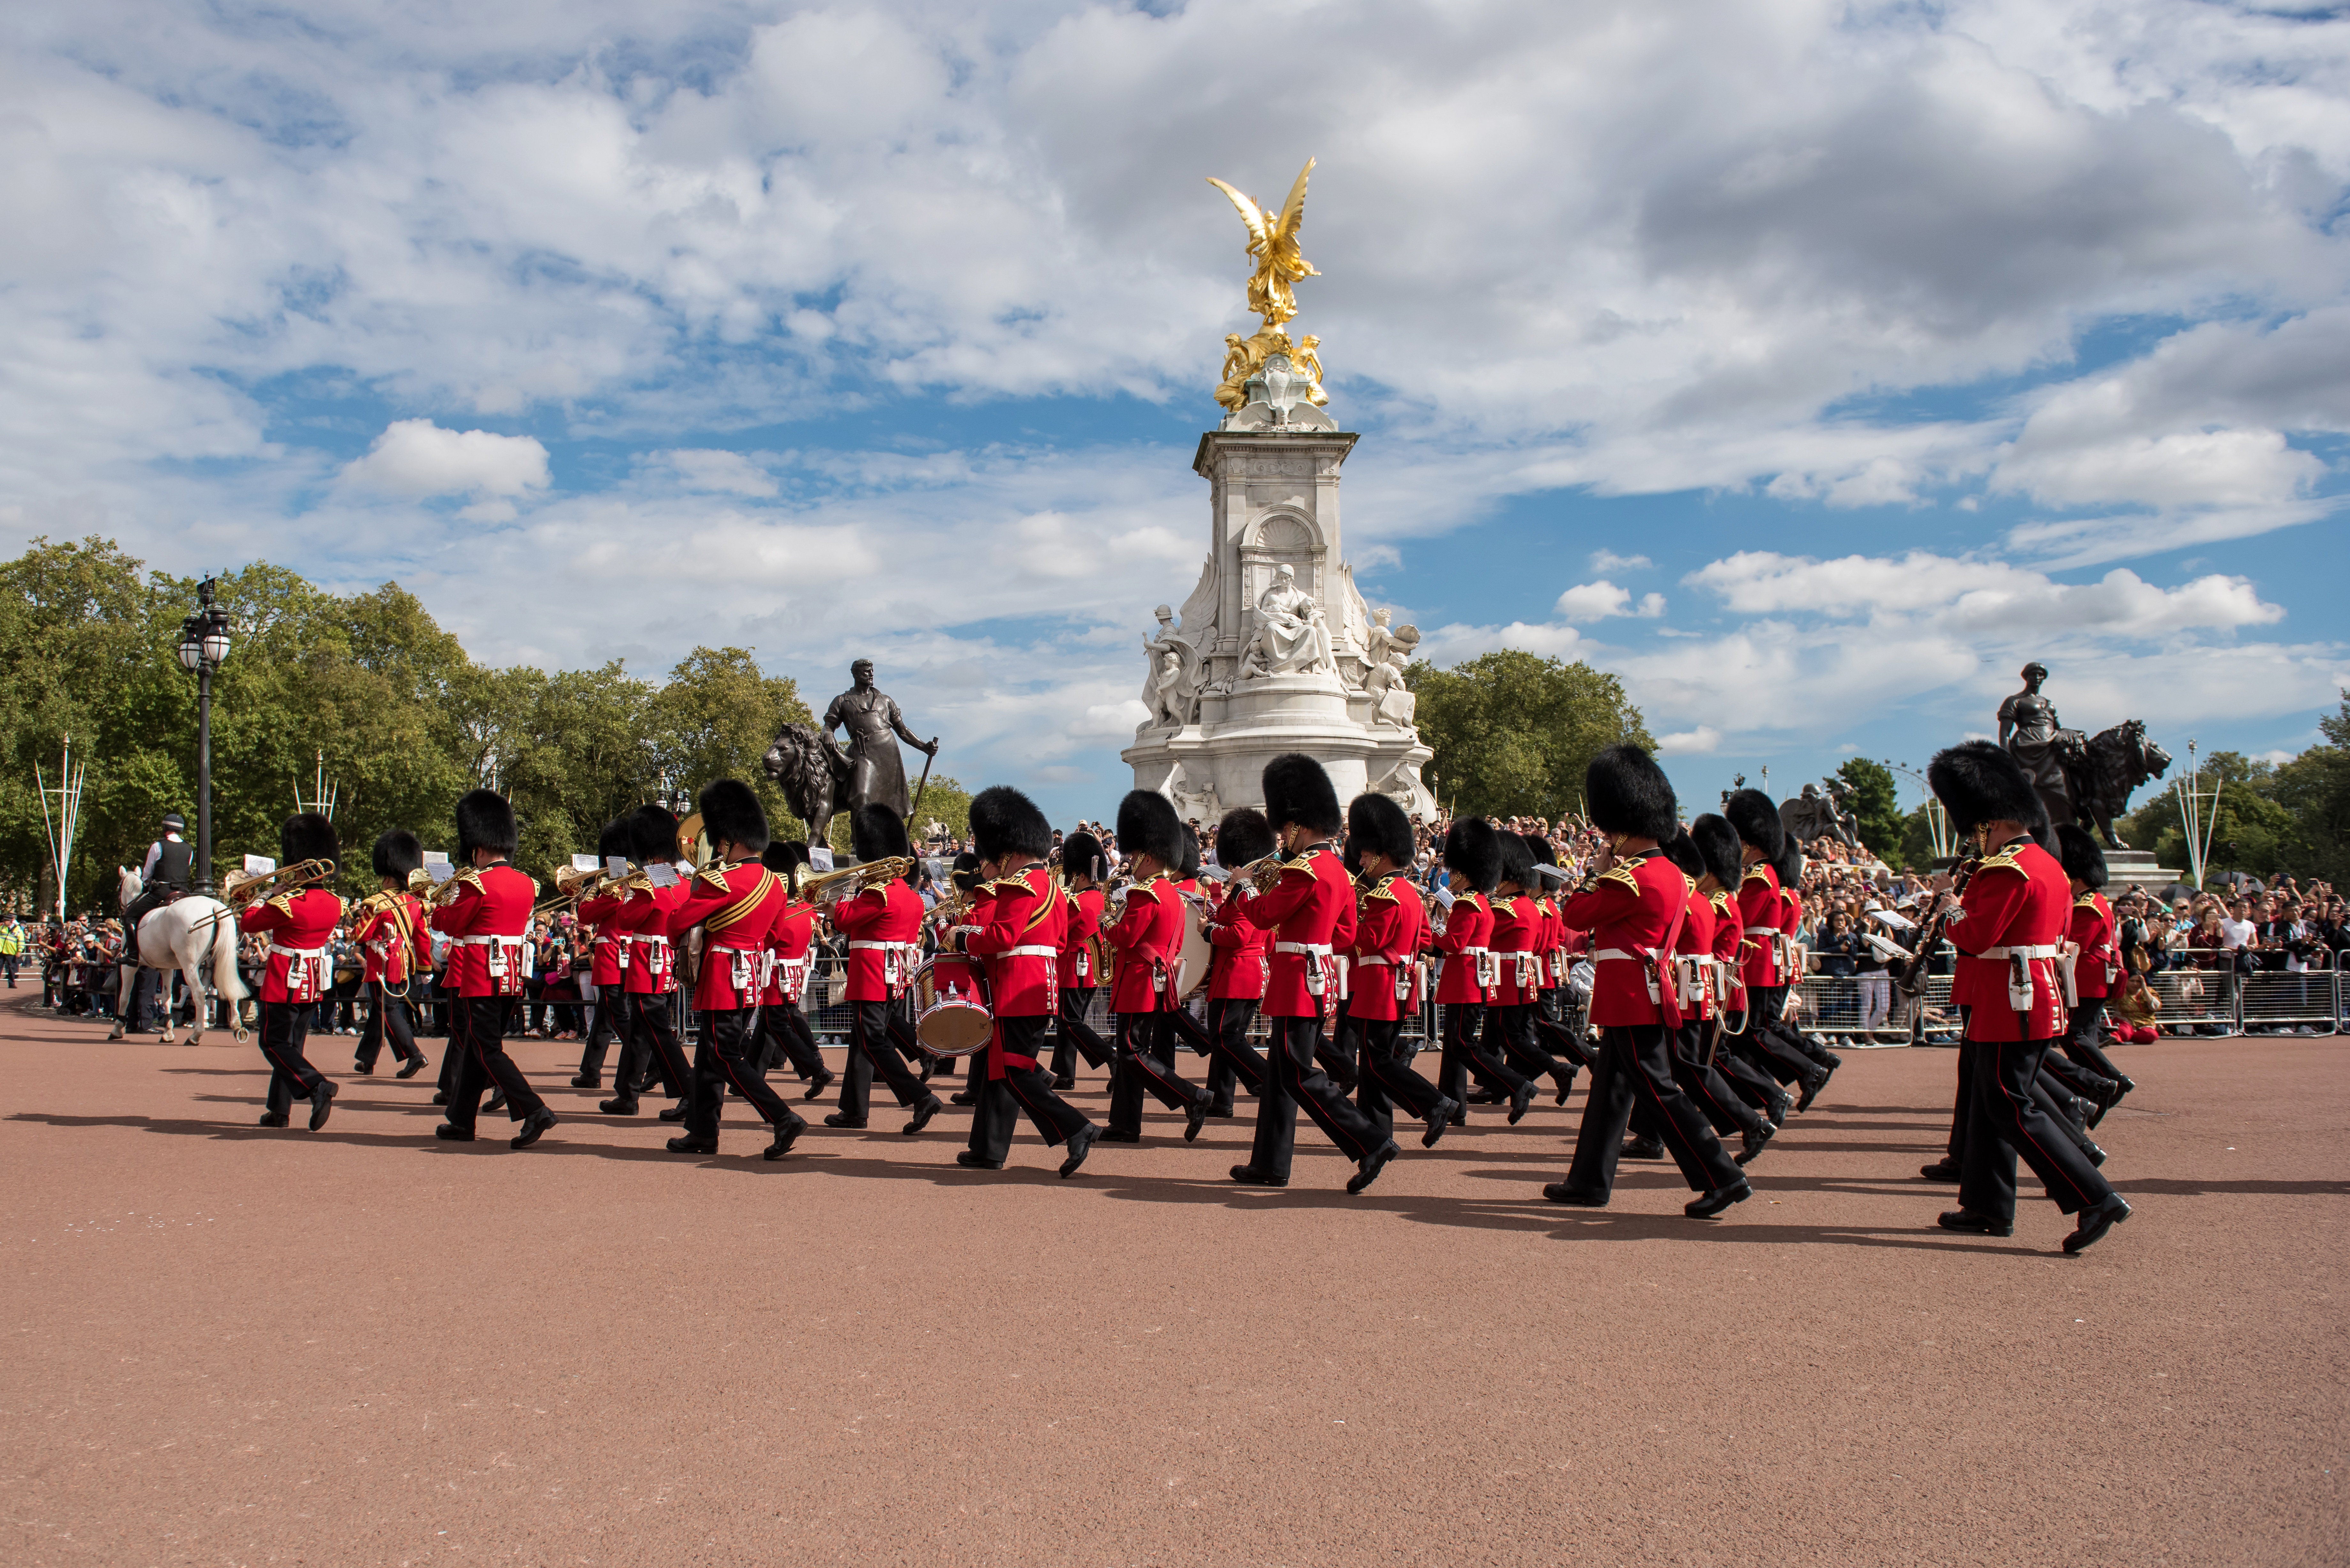 iStock-645735656_changing guards.jpg